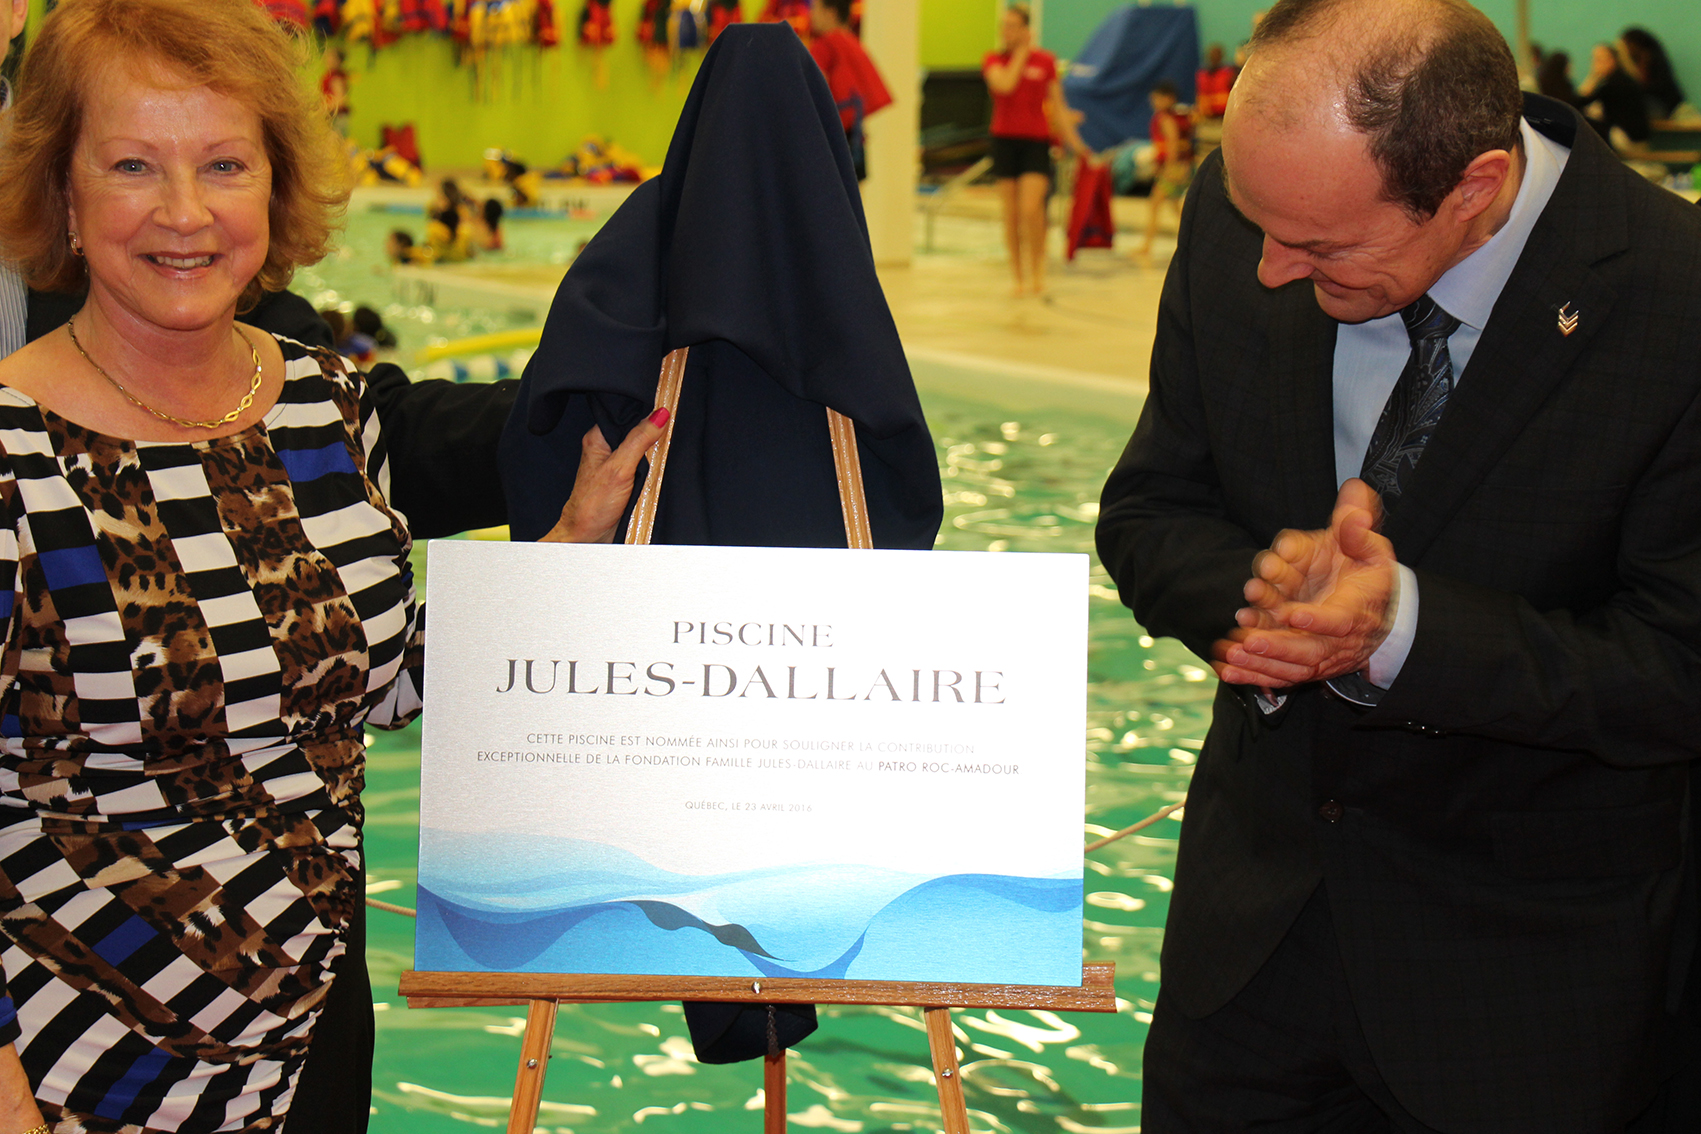 Photo Piscine Jules-Dallaire